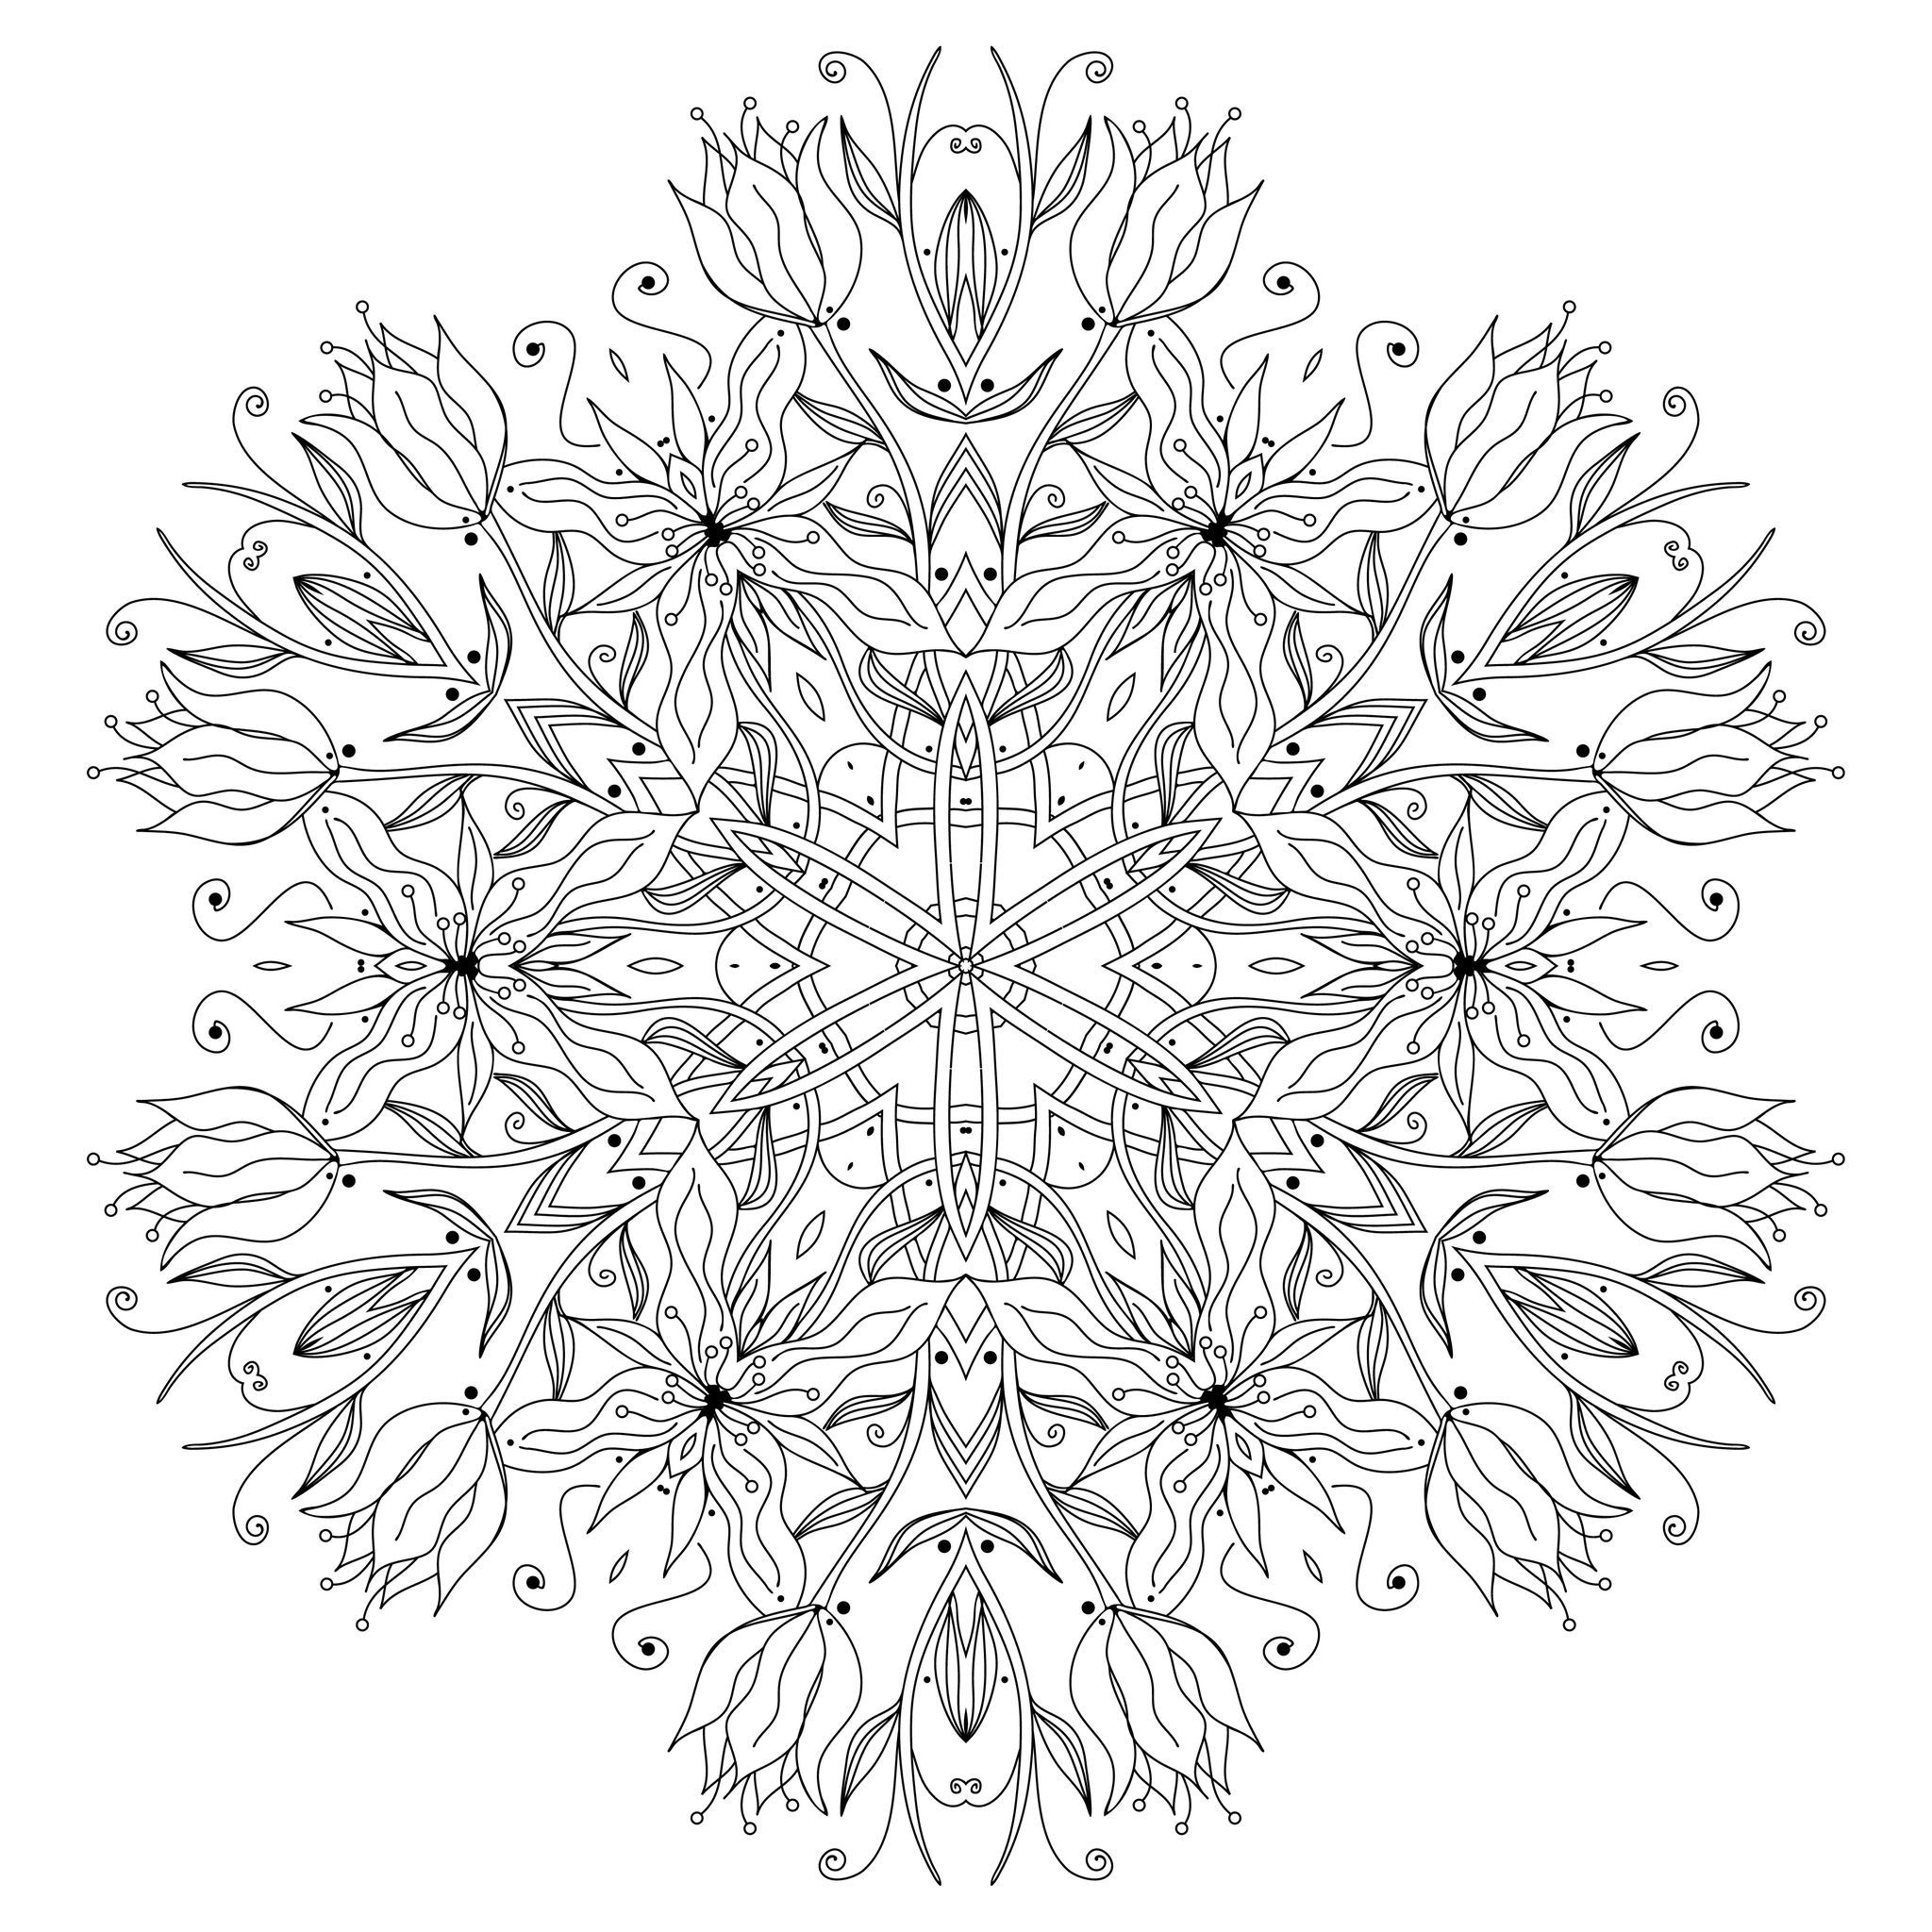 Smooth flowers and vegetal patterns, From the gallery : Mandalas ...